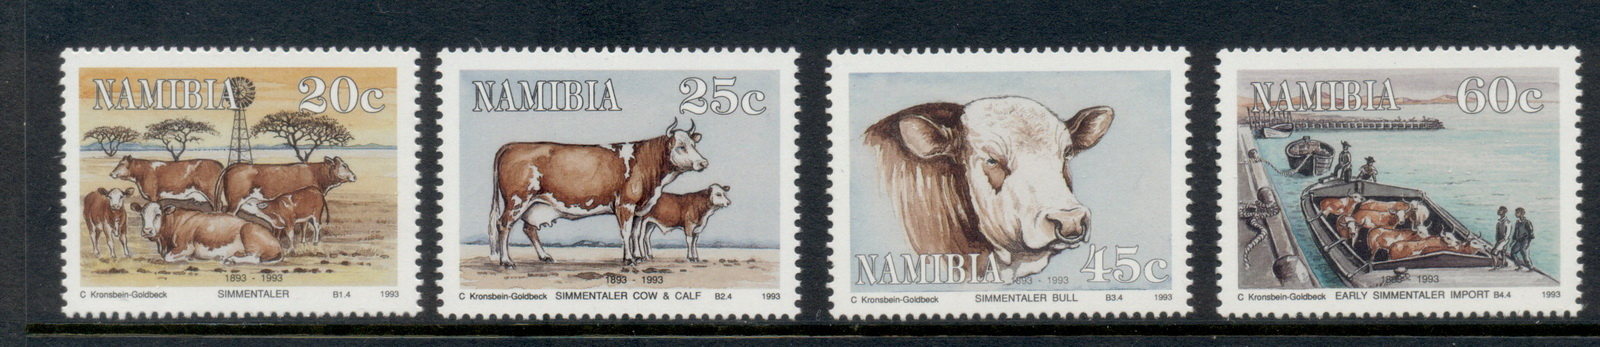 Namibia 1995 Arrival of Simmentaler Cattle MUH